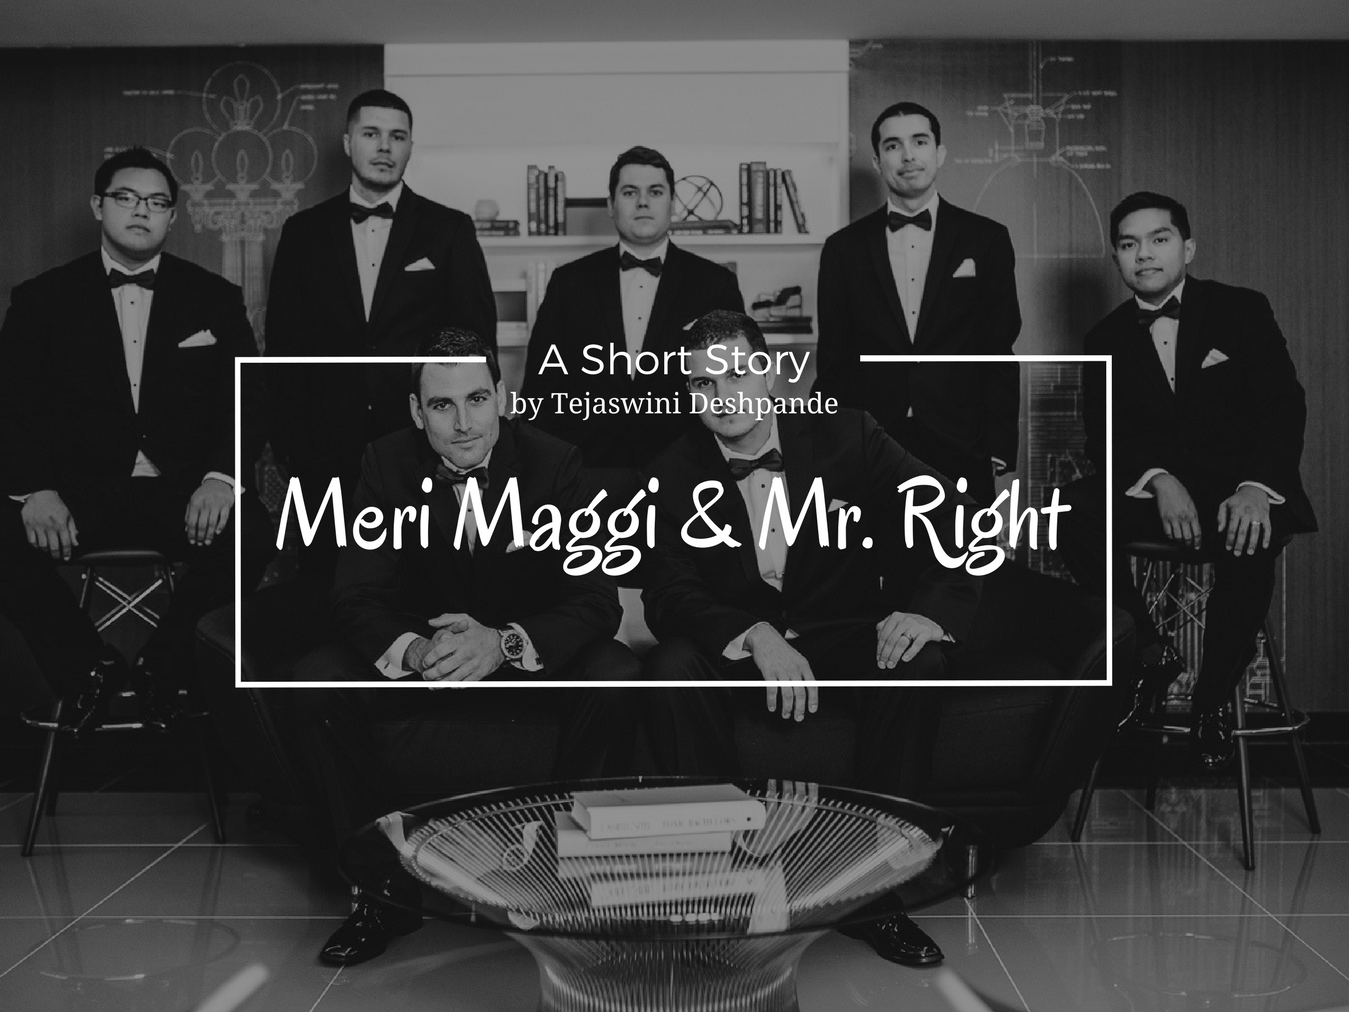 Meri Maggi & Mr. Right - A Short Story by Tejaswini Deshpande